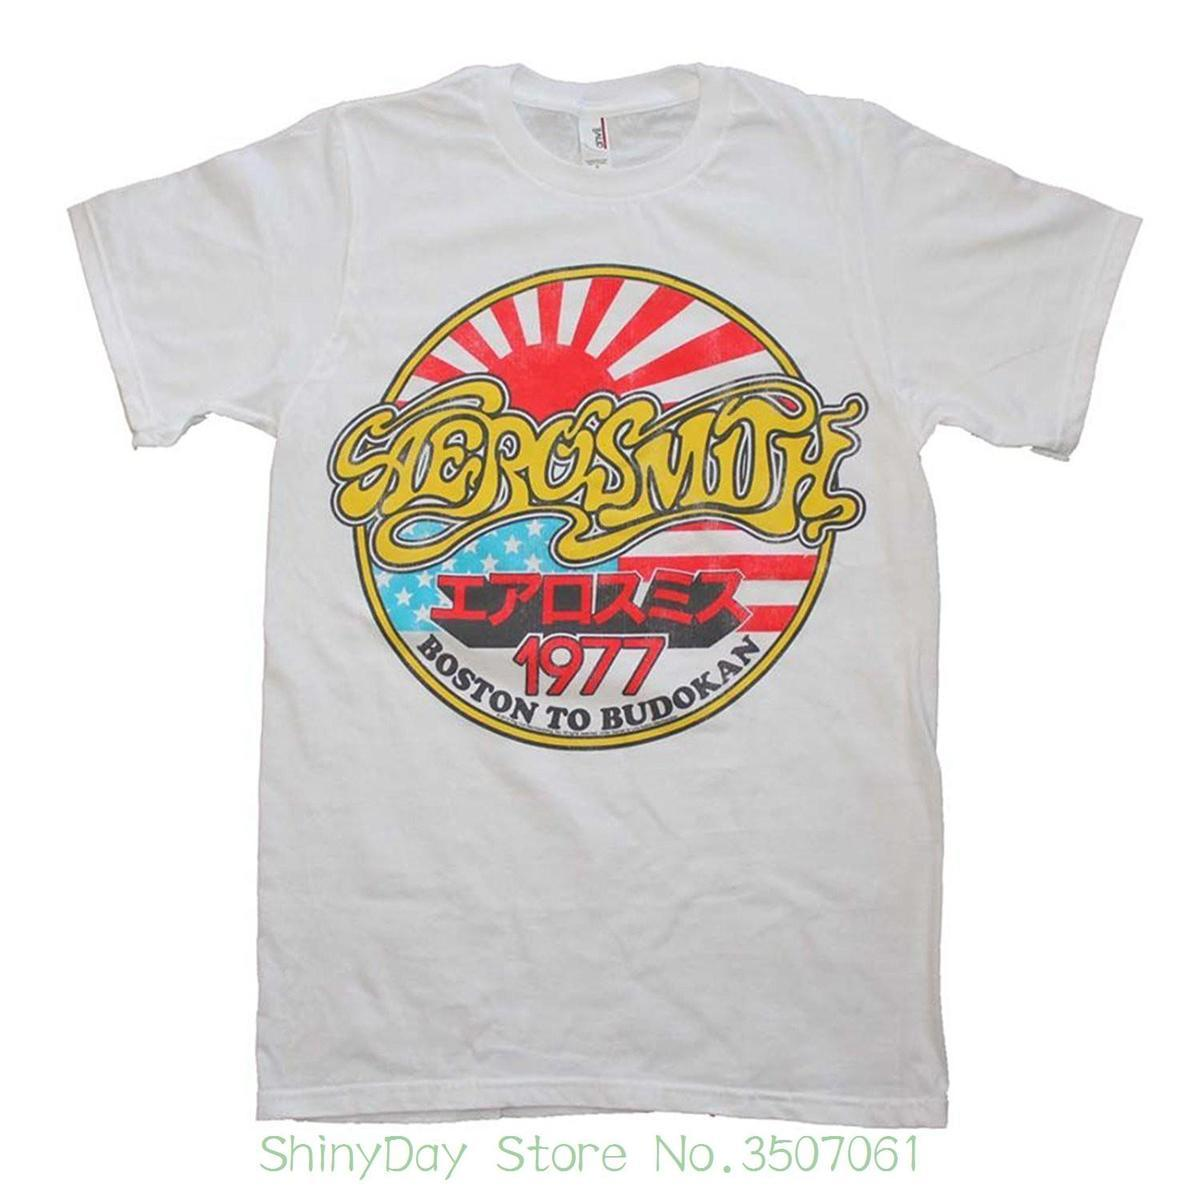 c30ed371d4c Newest 2018 Men S Fashion Aerosmith Boston To Budokan 1977 Slim Fit Concert  Tour T Shirt Buy T Shirt Fun Shirt From Amesion88